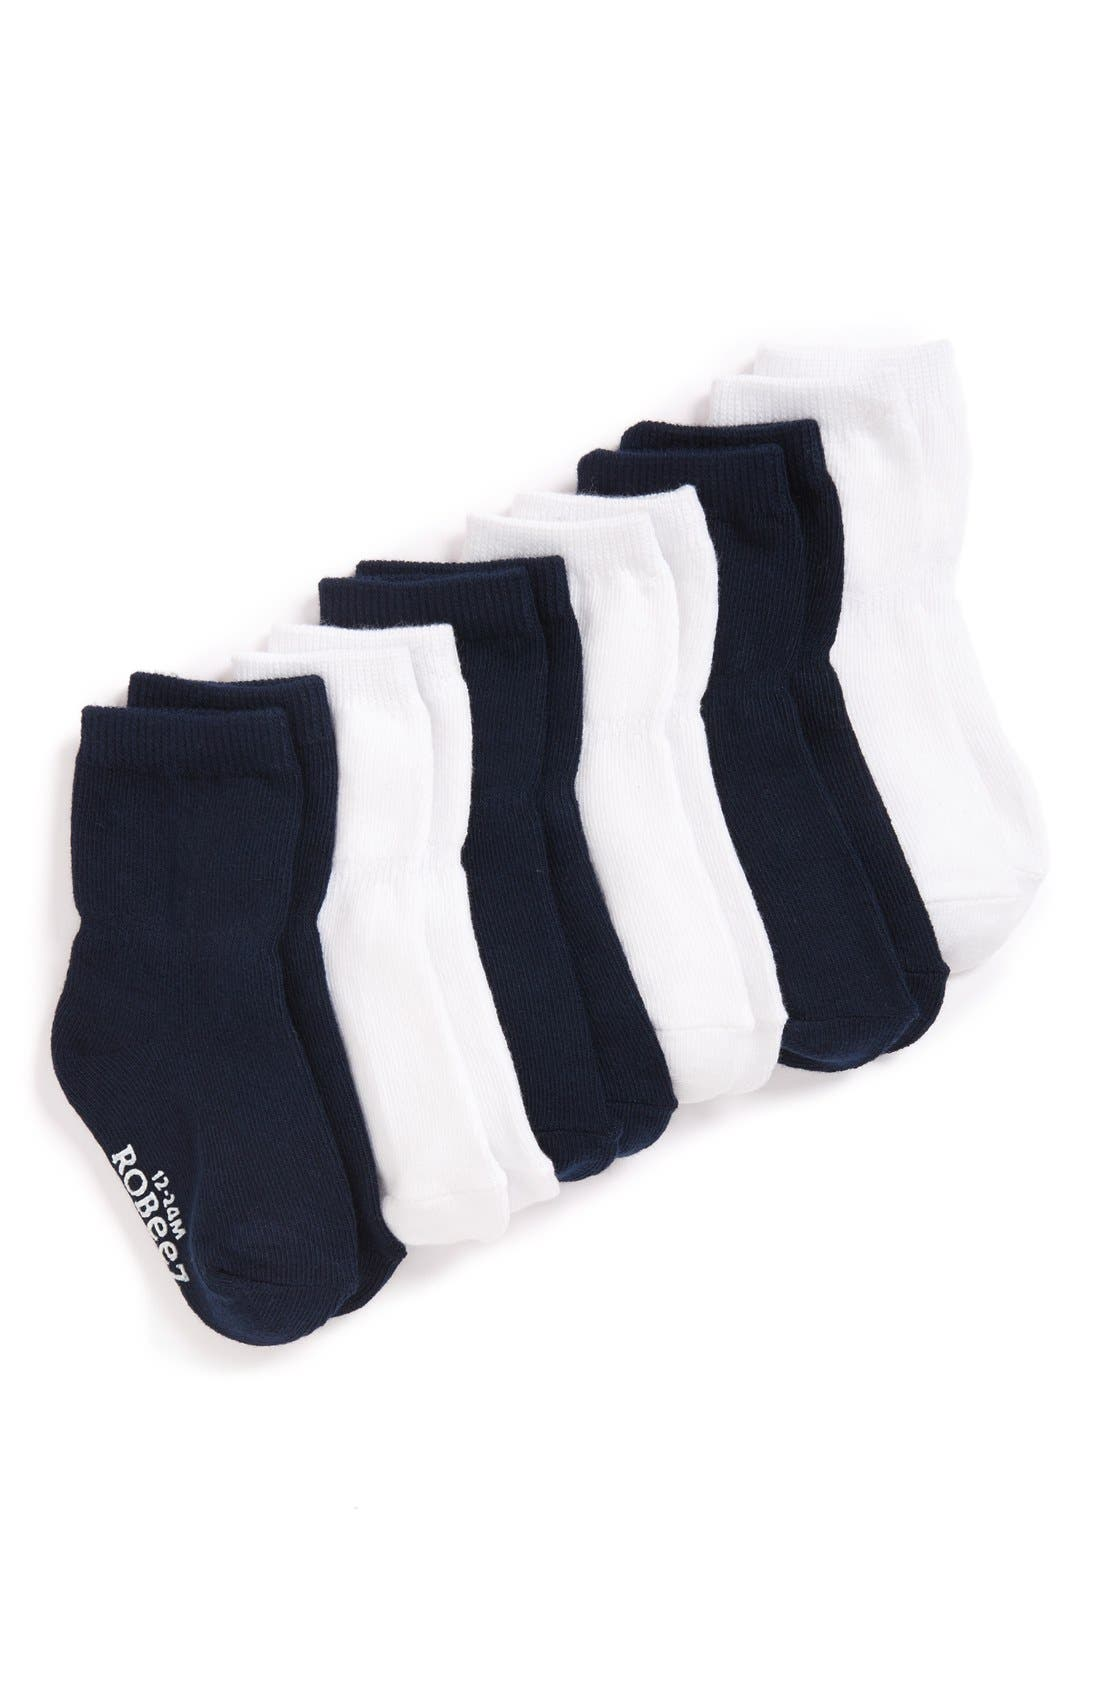 6-Pack Ankle Socks,                             Main thumbnail 1, color,                             NAVY